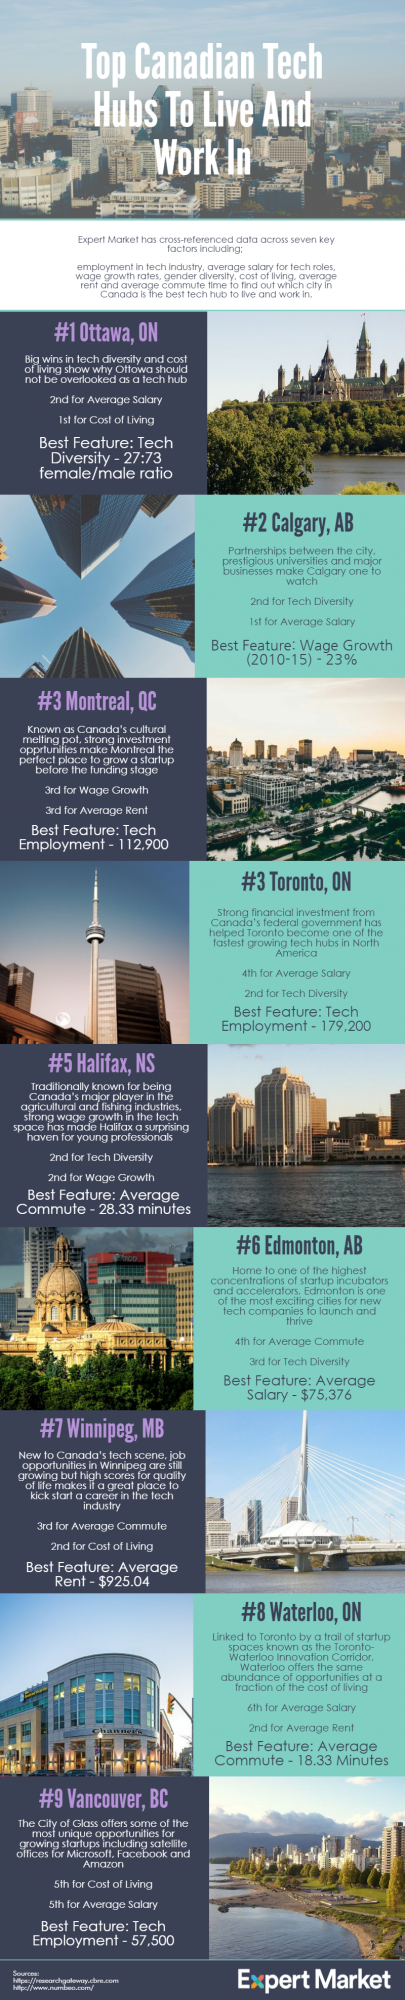 Canadas-top-tech-hubs-infographic